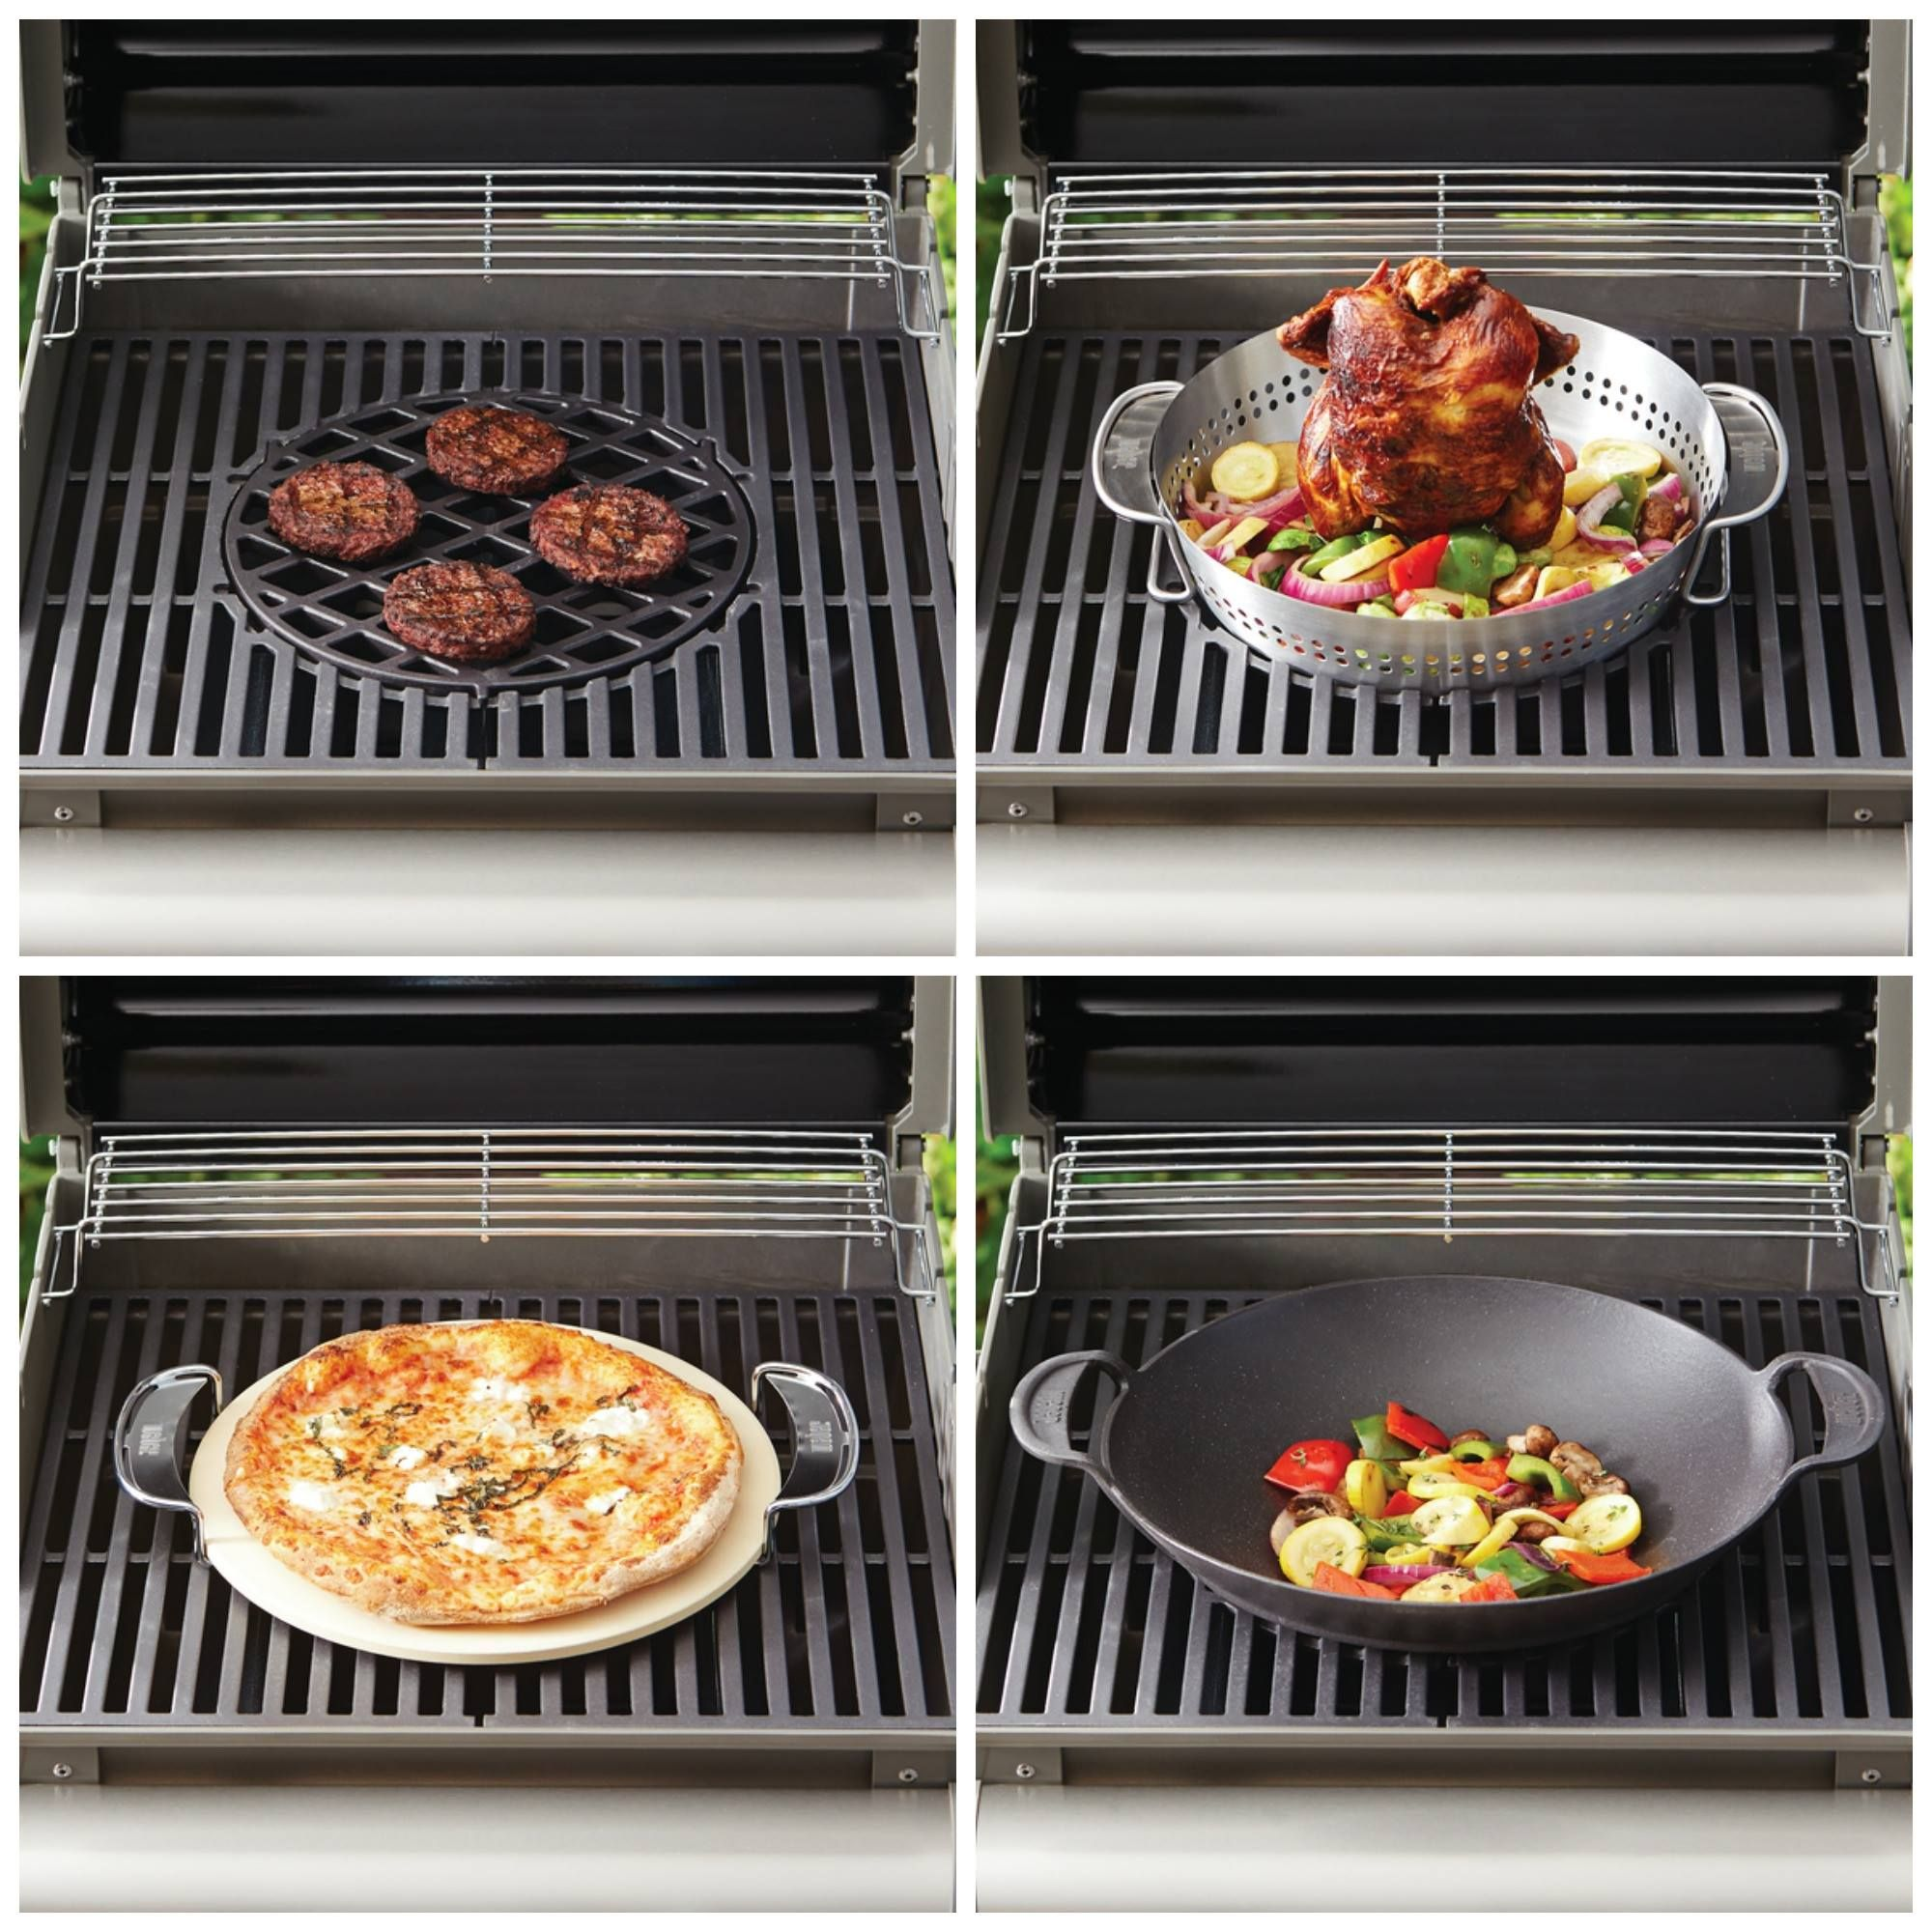 Weber Spirit E 210 2 Burner Propane Gas Grill Featuring The Gourmet Bbq System 46113101 The Home Depot Gourmet Bbq Grilling Recipes Grilling